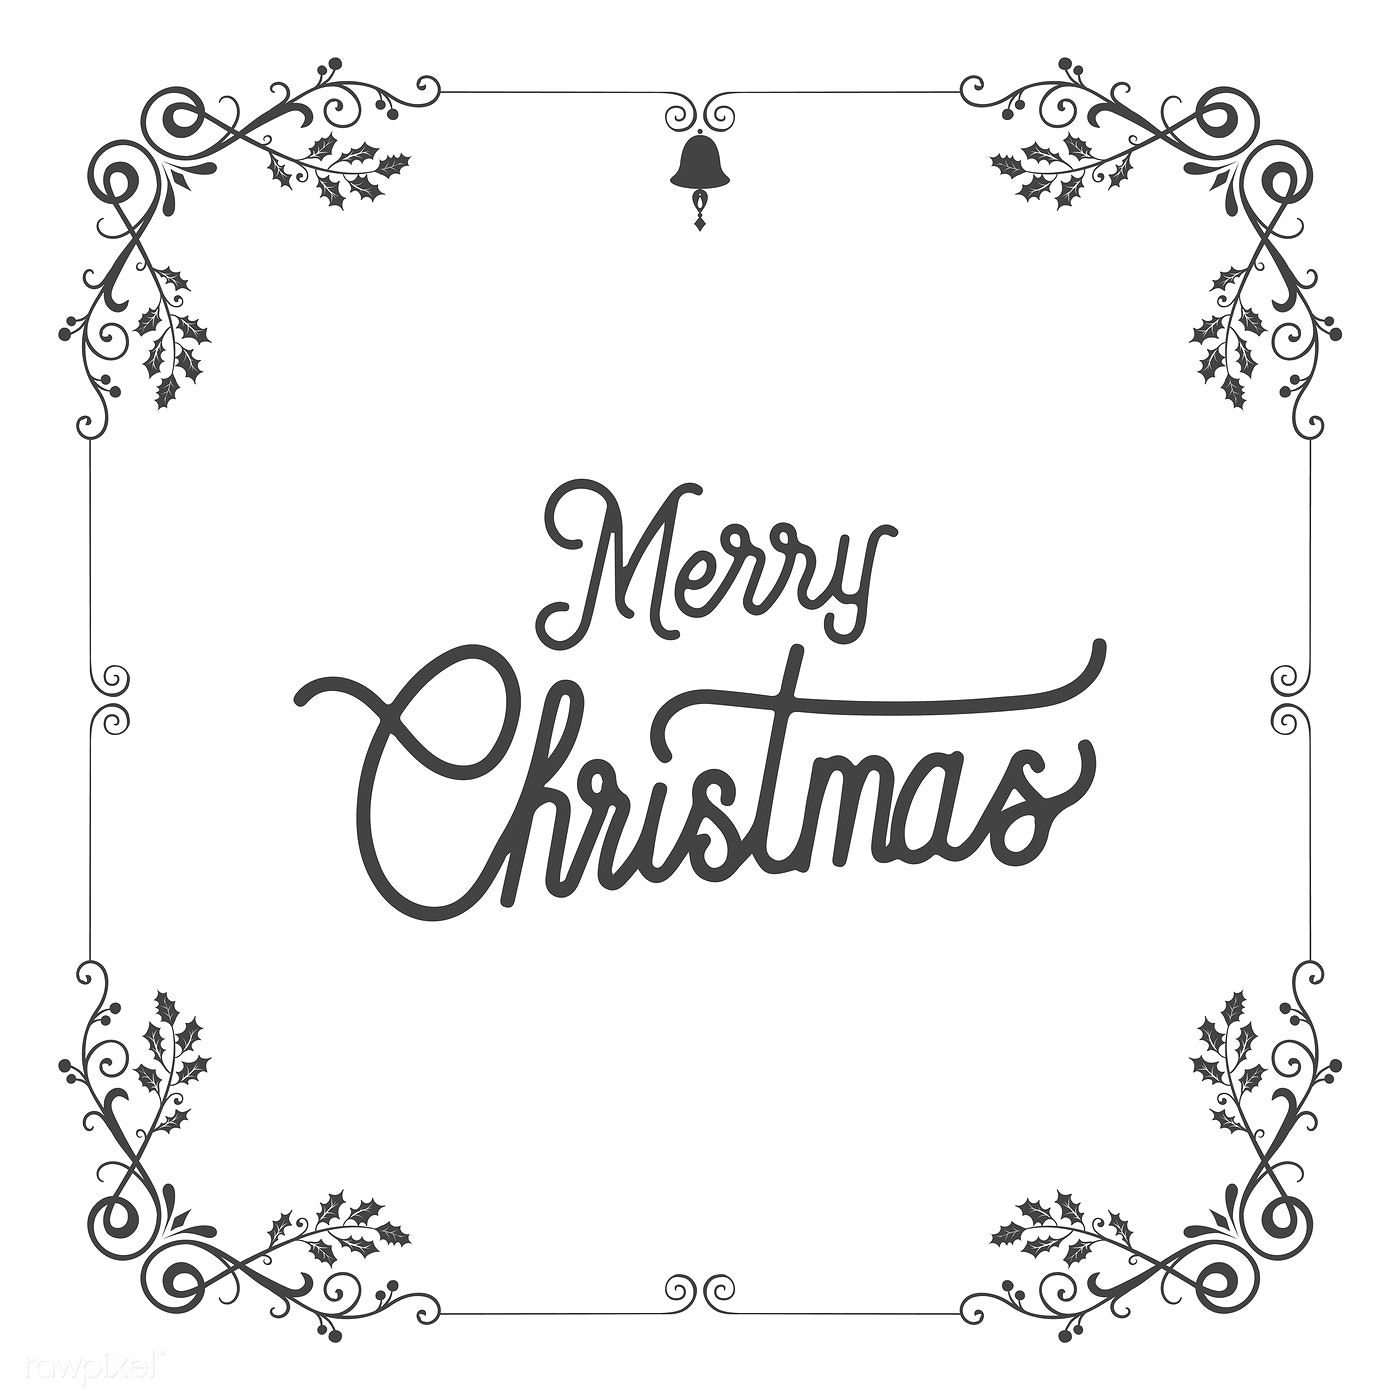 Merry Christmas badge design vector free image by